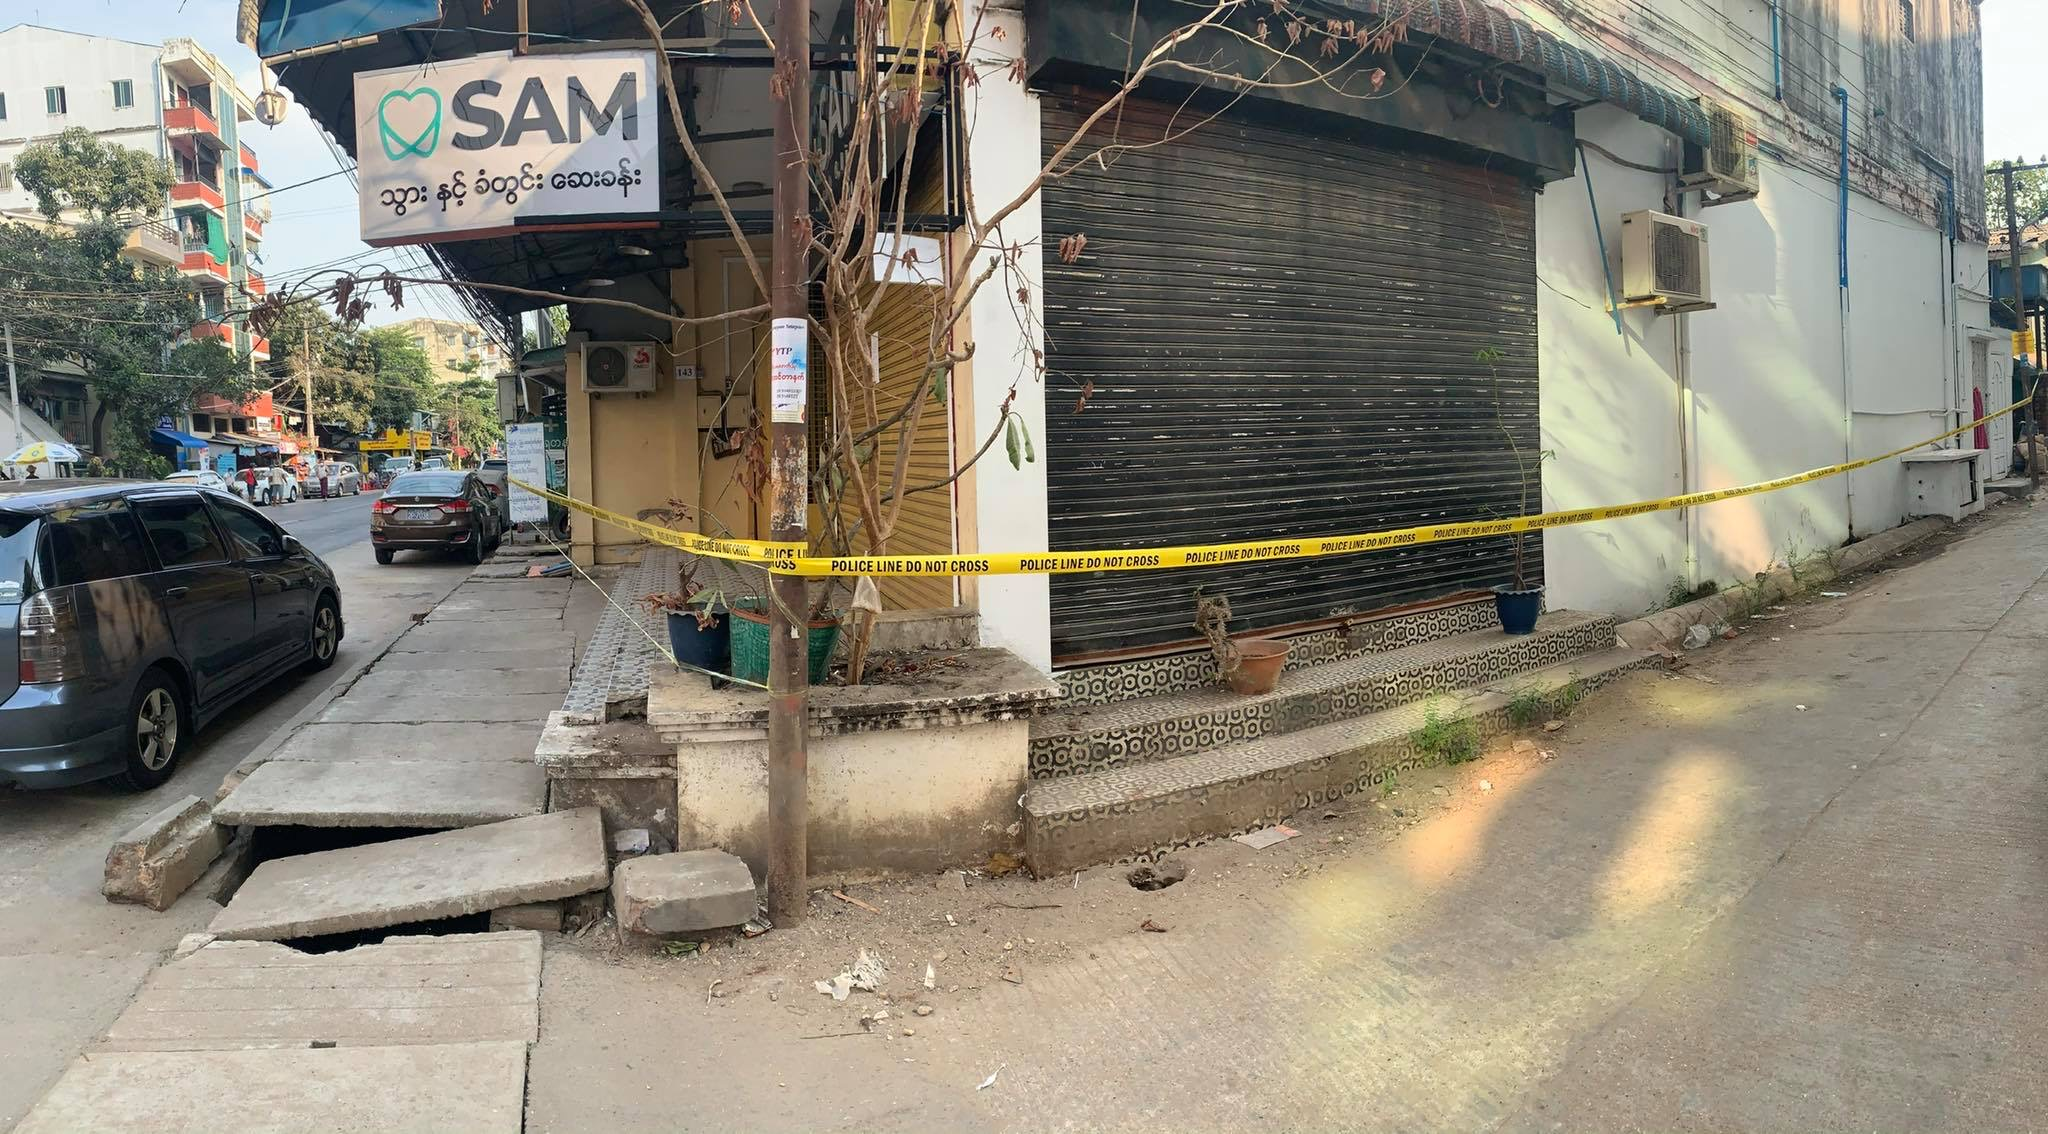 Myanmar community lock down, because a confirmed cases of COVID-19 was found here